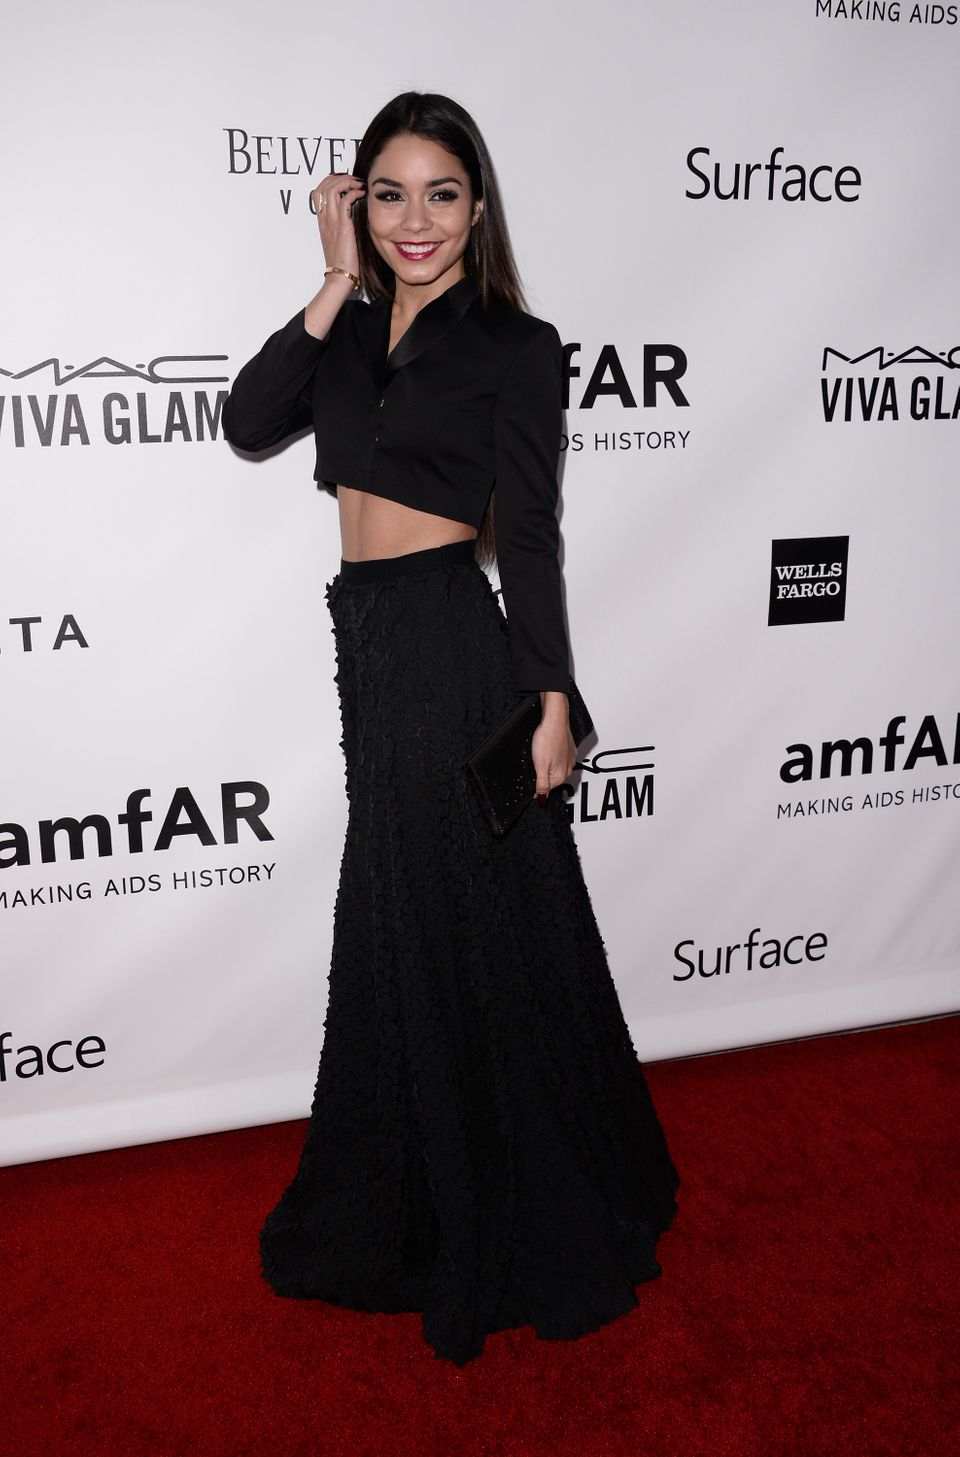 Actress Vanessa Hudgens arrives at the fourth annual amfAR Inspiration Gala at Milk Studios on Thursday, Dec. 12, 2013 in Los